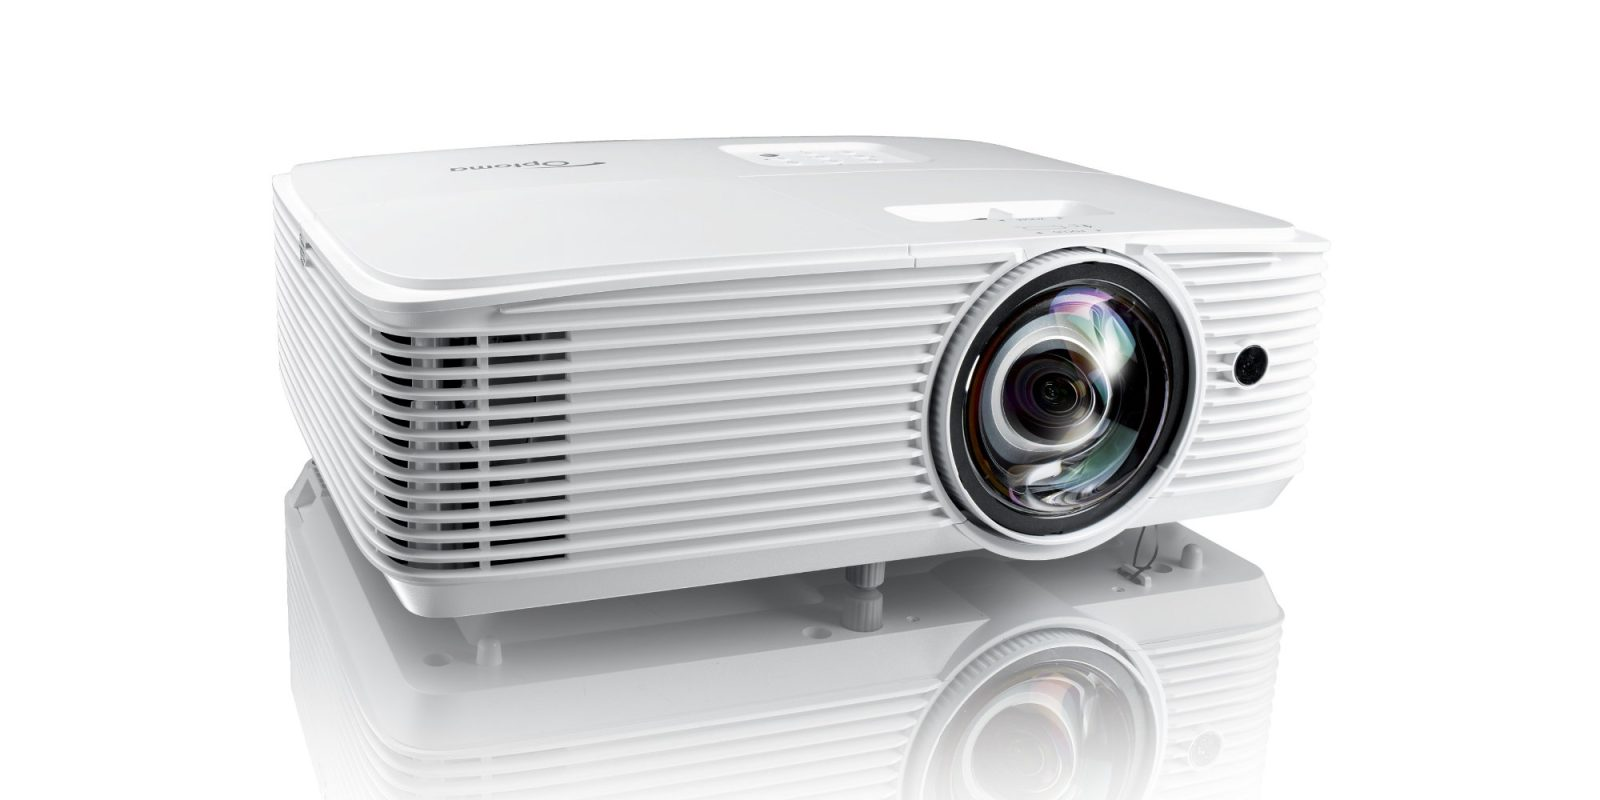 Optoma unveils new 4K projector + two 120Hz offerings targeted at gamers